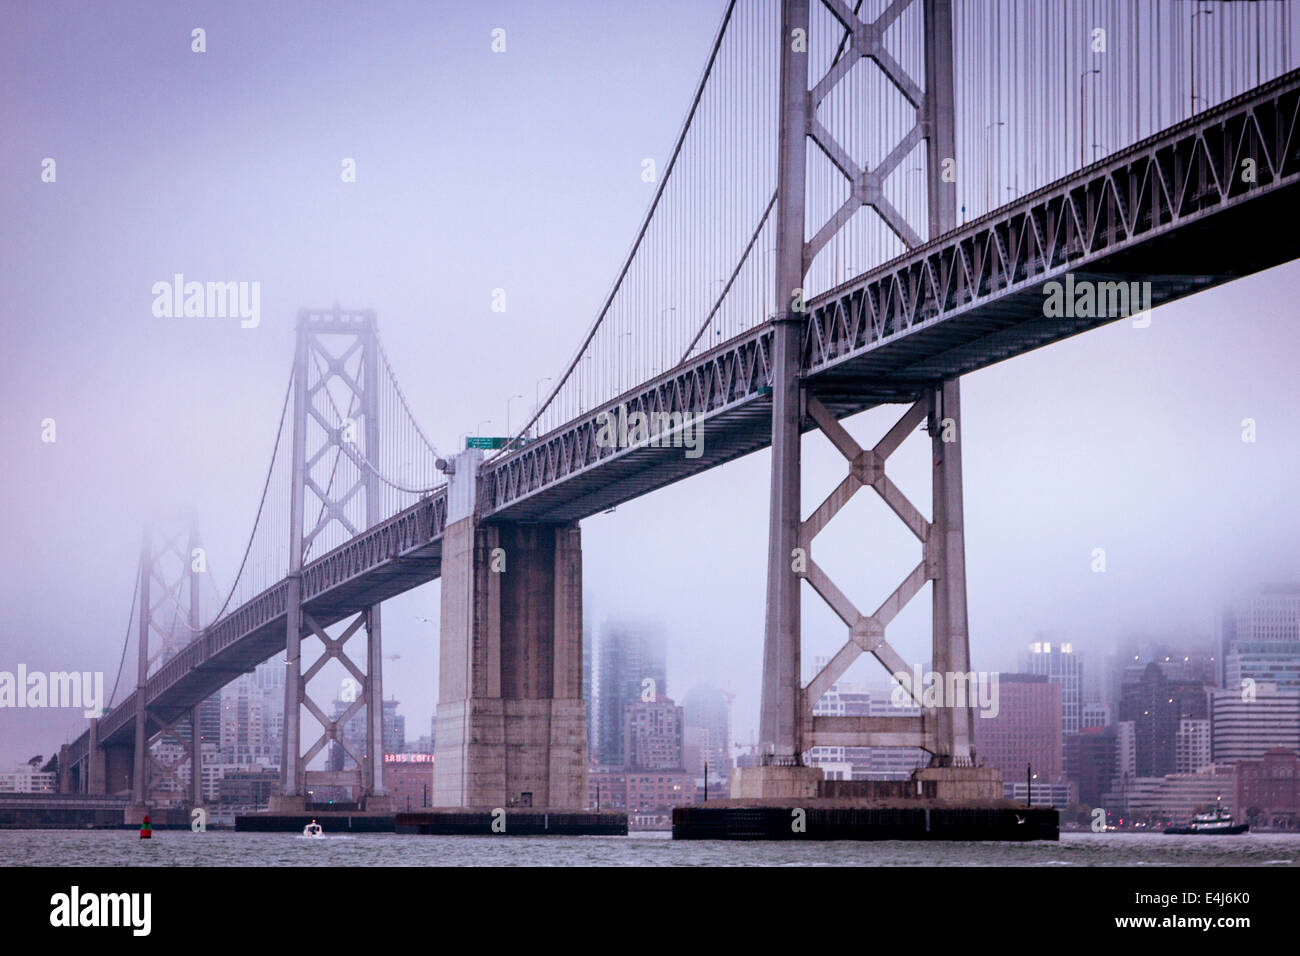 San Francisco Bay Bridge and the city from the water on a cold and foggy day - Stock Image